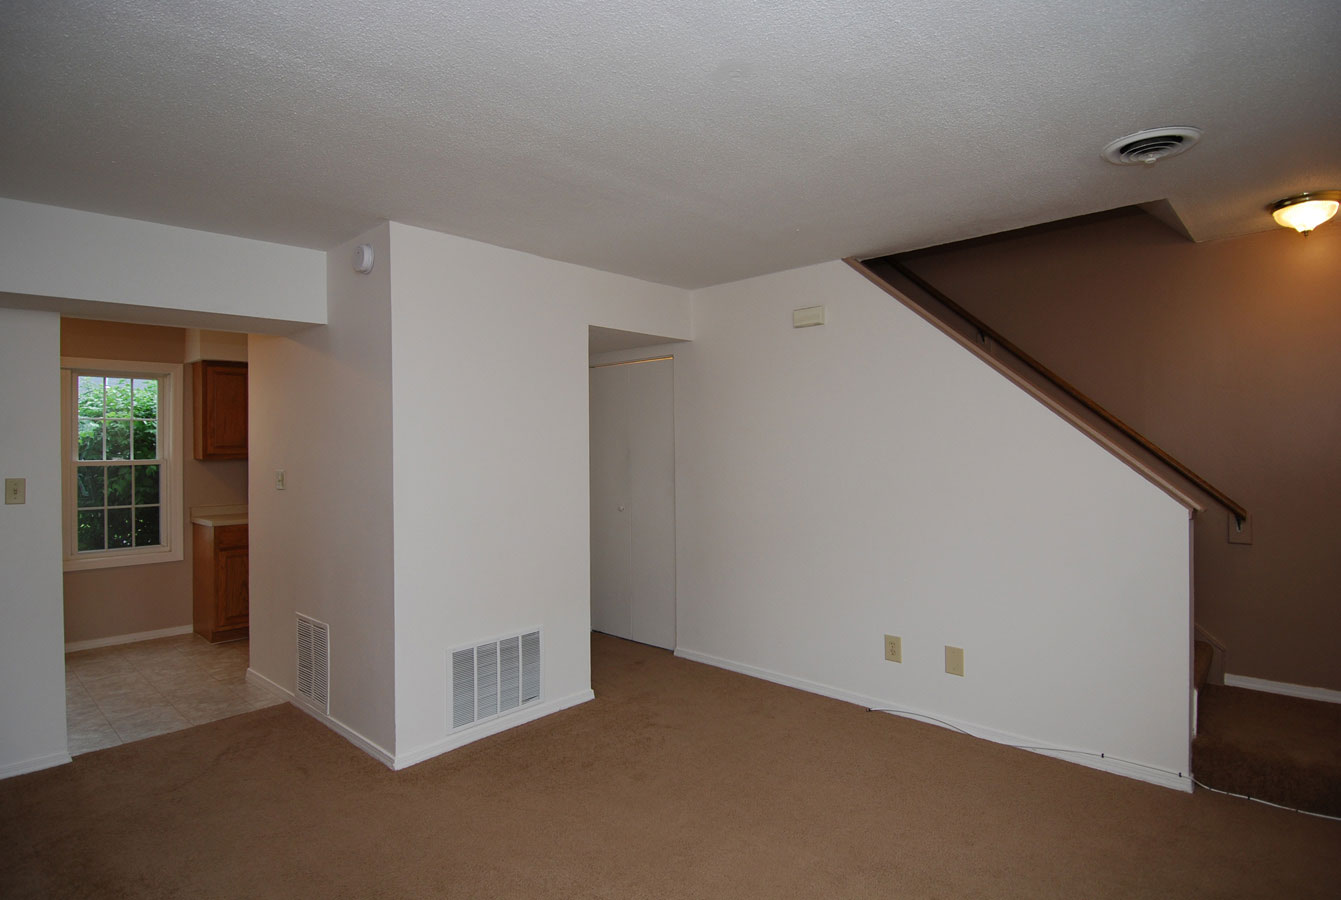 2 bedroom apartment in manchester nh at wellington terrace for Living room manchester